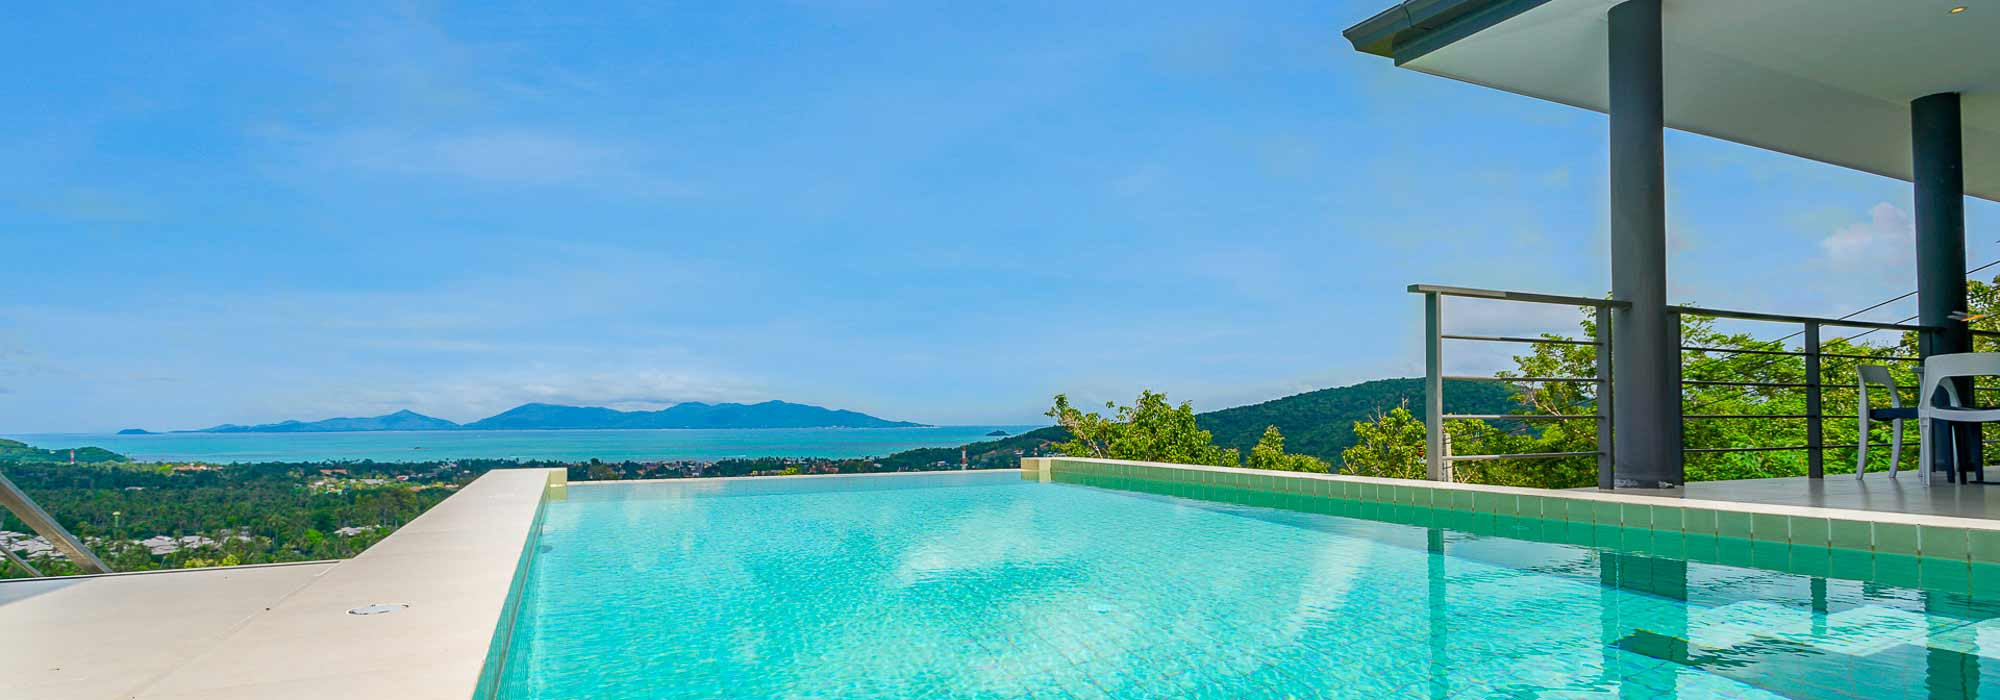 Villa Bella Vista – Amazing Sea View – North-East of Koh Samui – Bophut